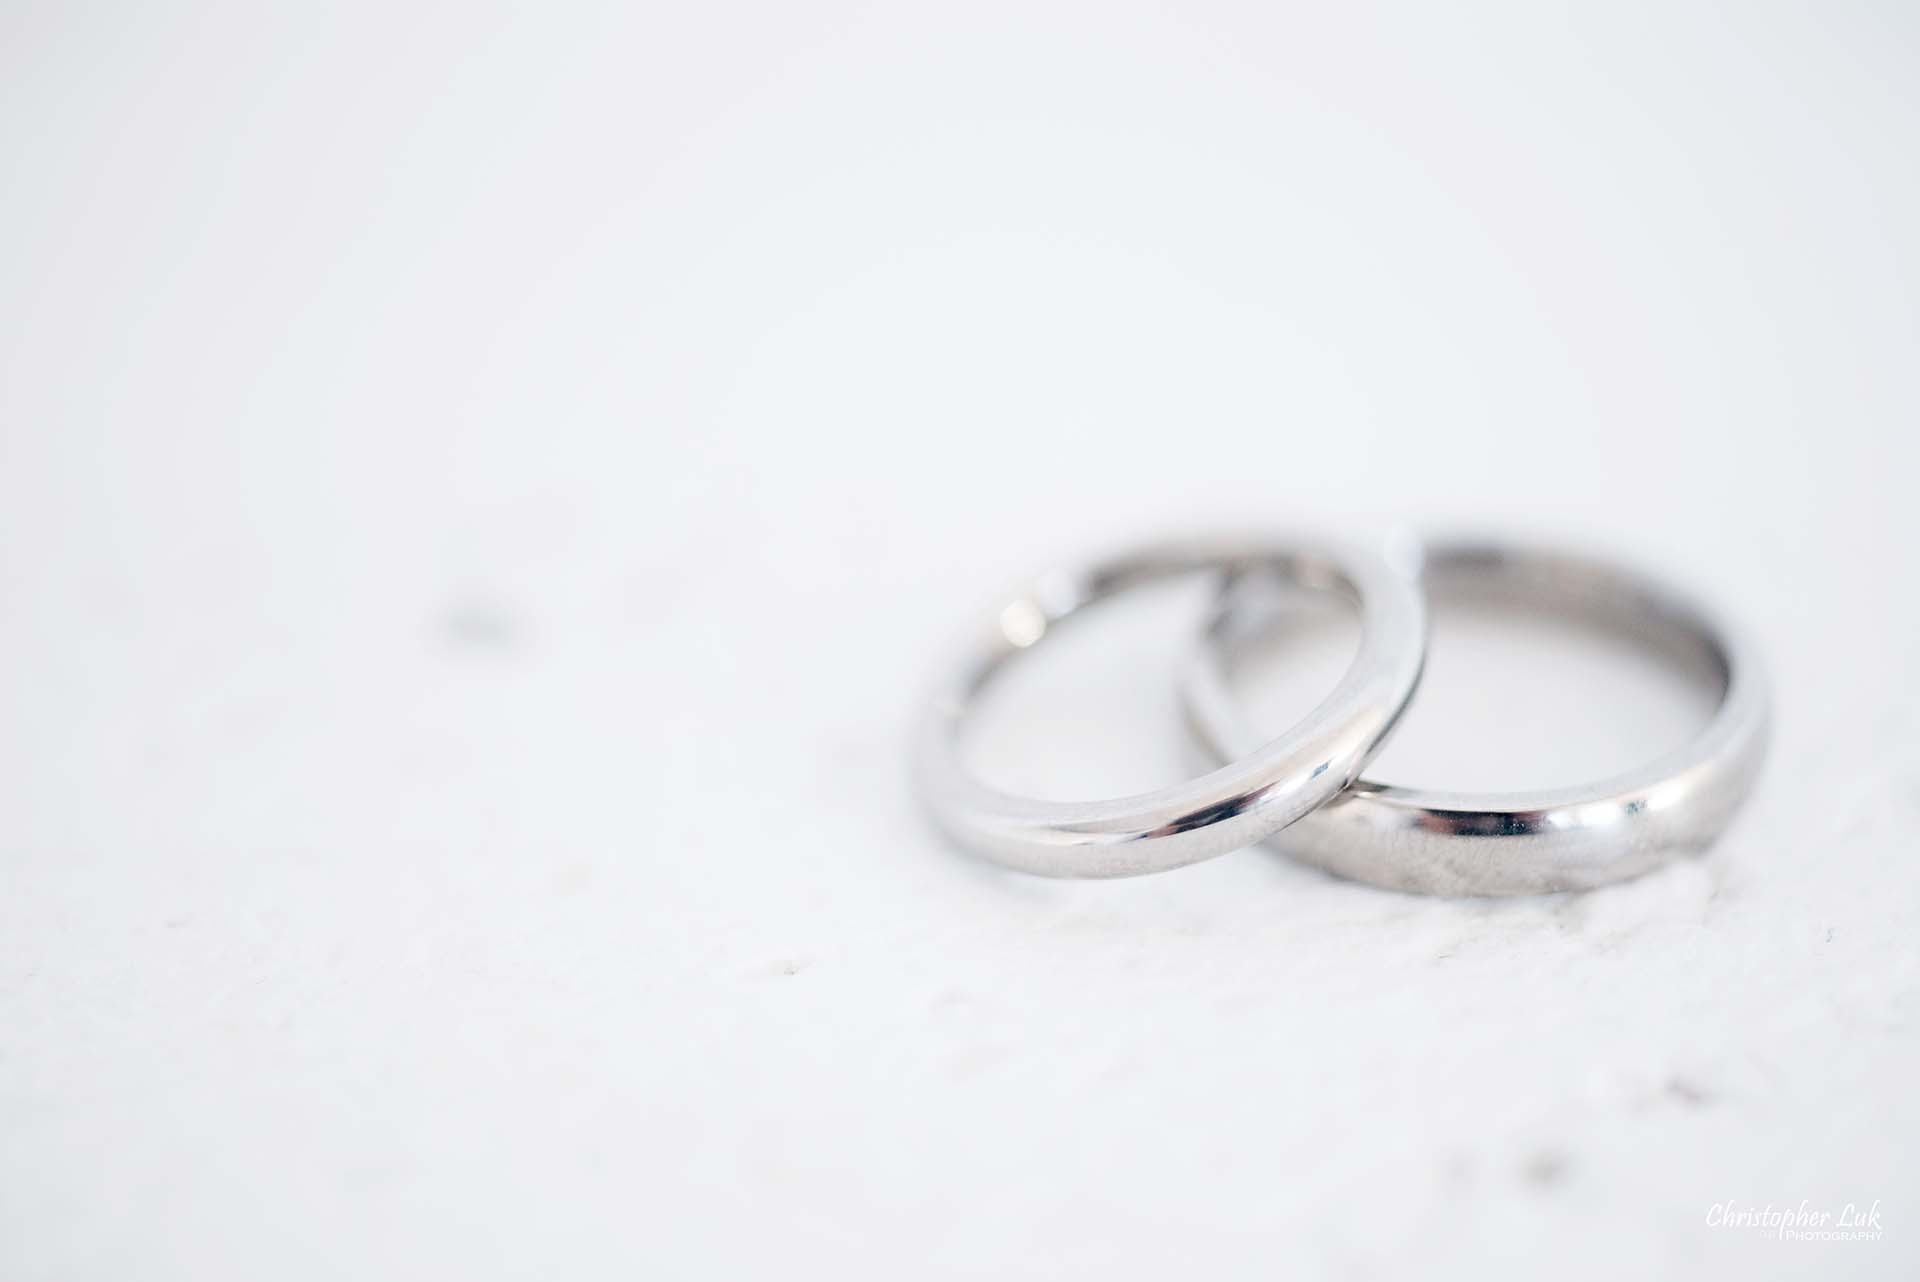 Christopher Luk Toronto Wedding Photographer - Mint Room Studios Bands Rings Detail